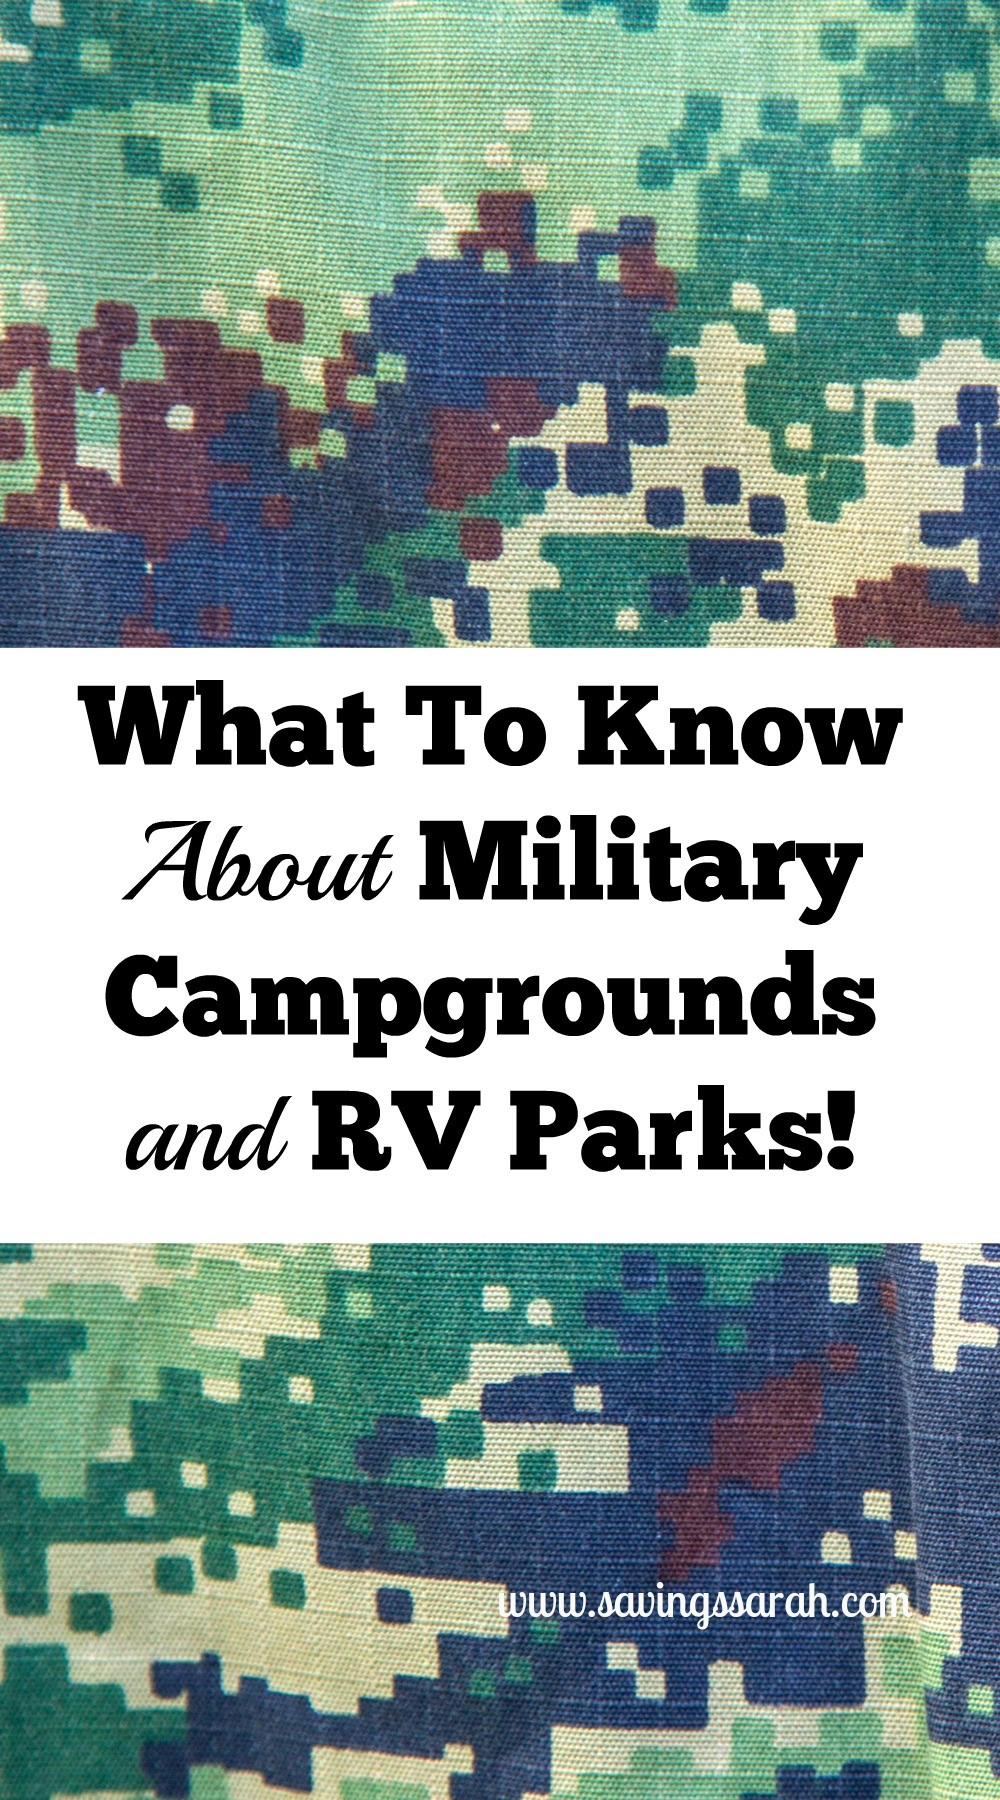 what to know about military campgrounds and rv parks